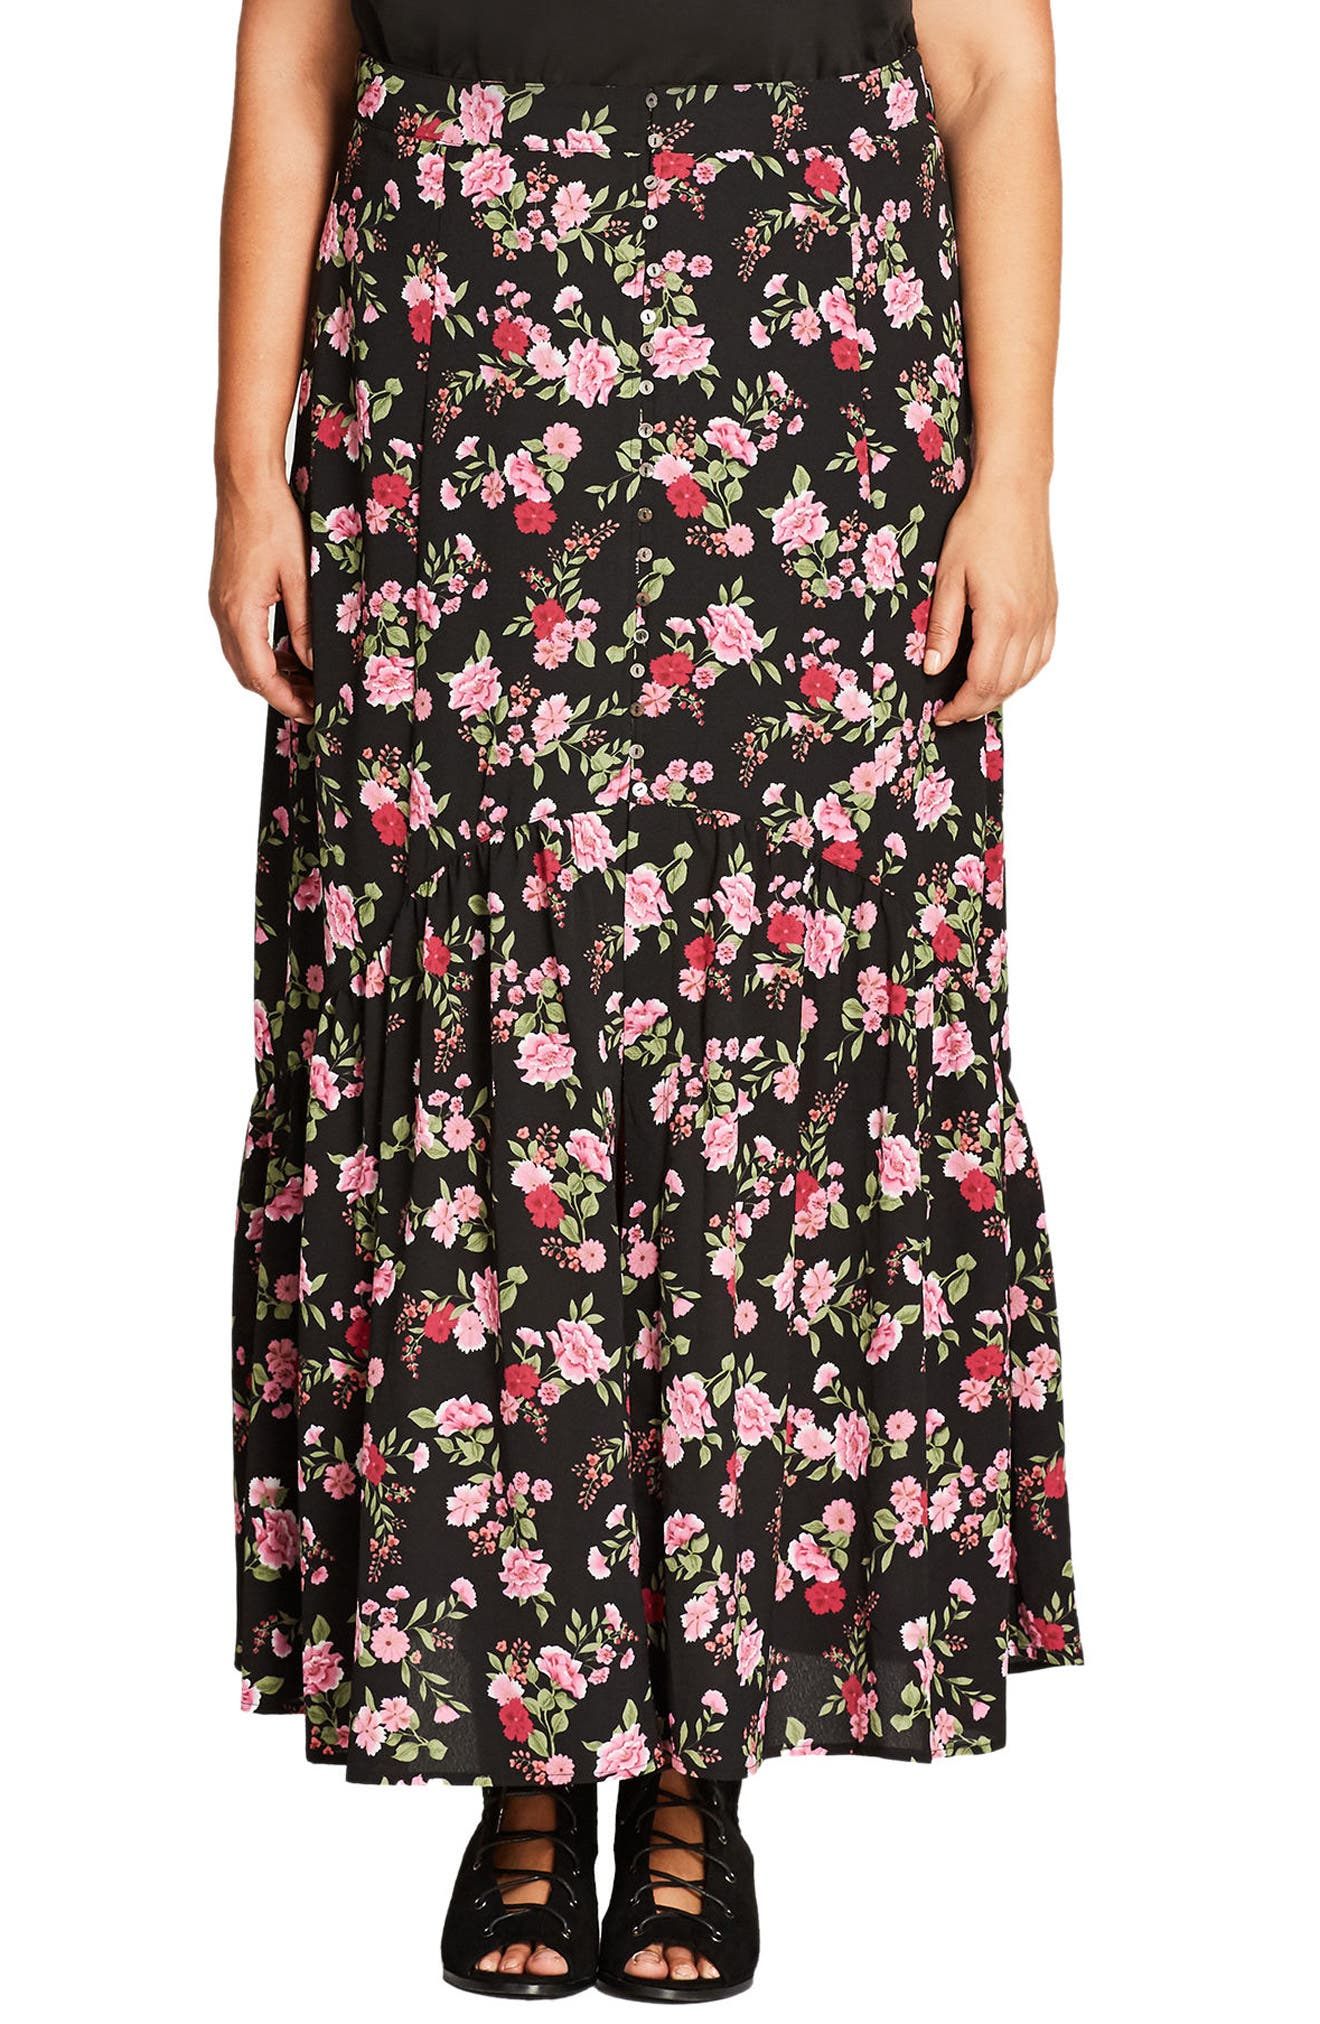 City Chic Free Spirit Maxi Skirt (Plus Size)